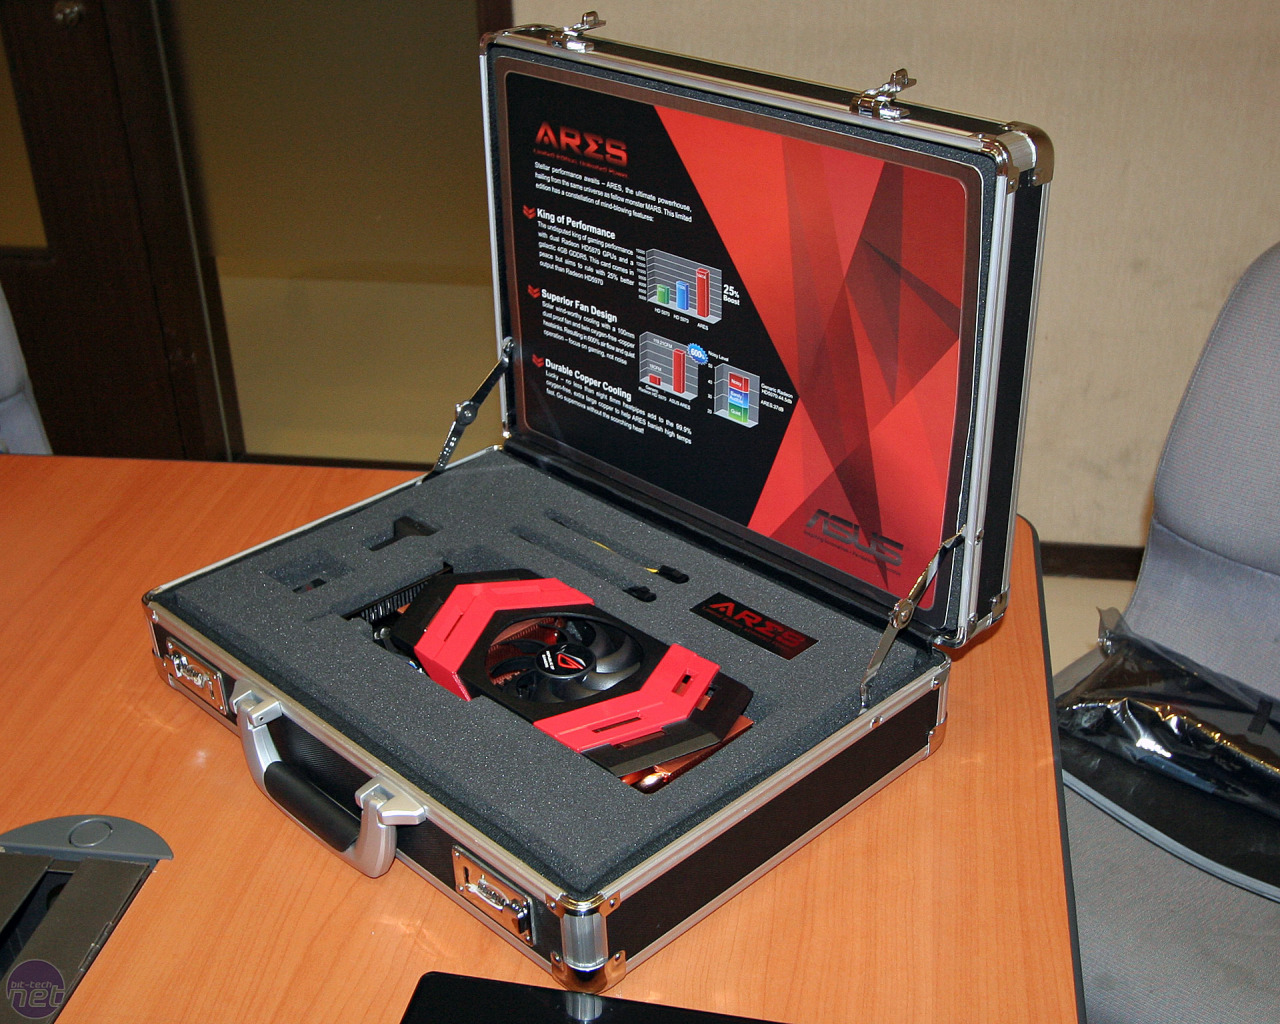 asus tech Asus' directcu cooling technology benefits not only the rog series matrix, ares and mars, but also all the way down through every model with the suffix 'directcu.